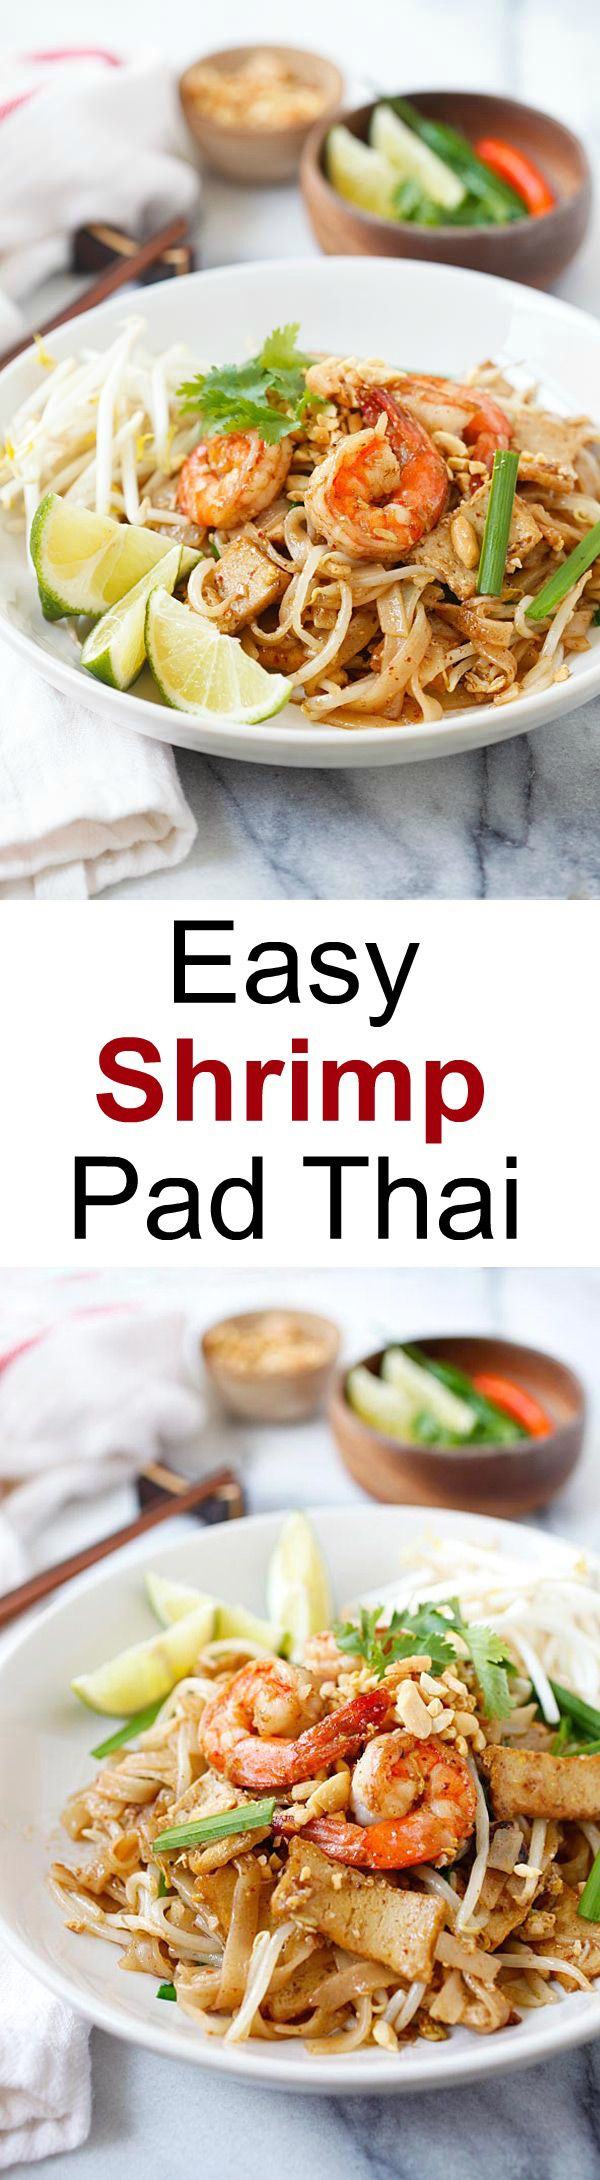 Pad Thai is a very popular Thai dish. This easy Pad Thai recipe takes only 30 minutes to make; you can make Pad Thai with store-bought ingredients. | rasamalaysia.com